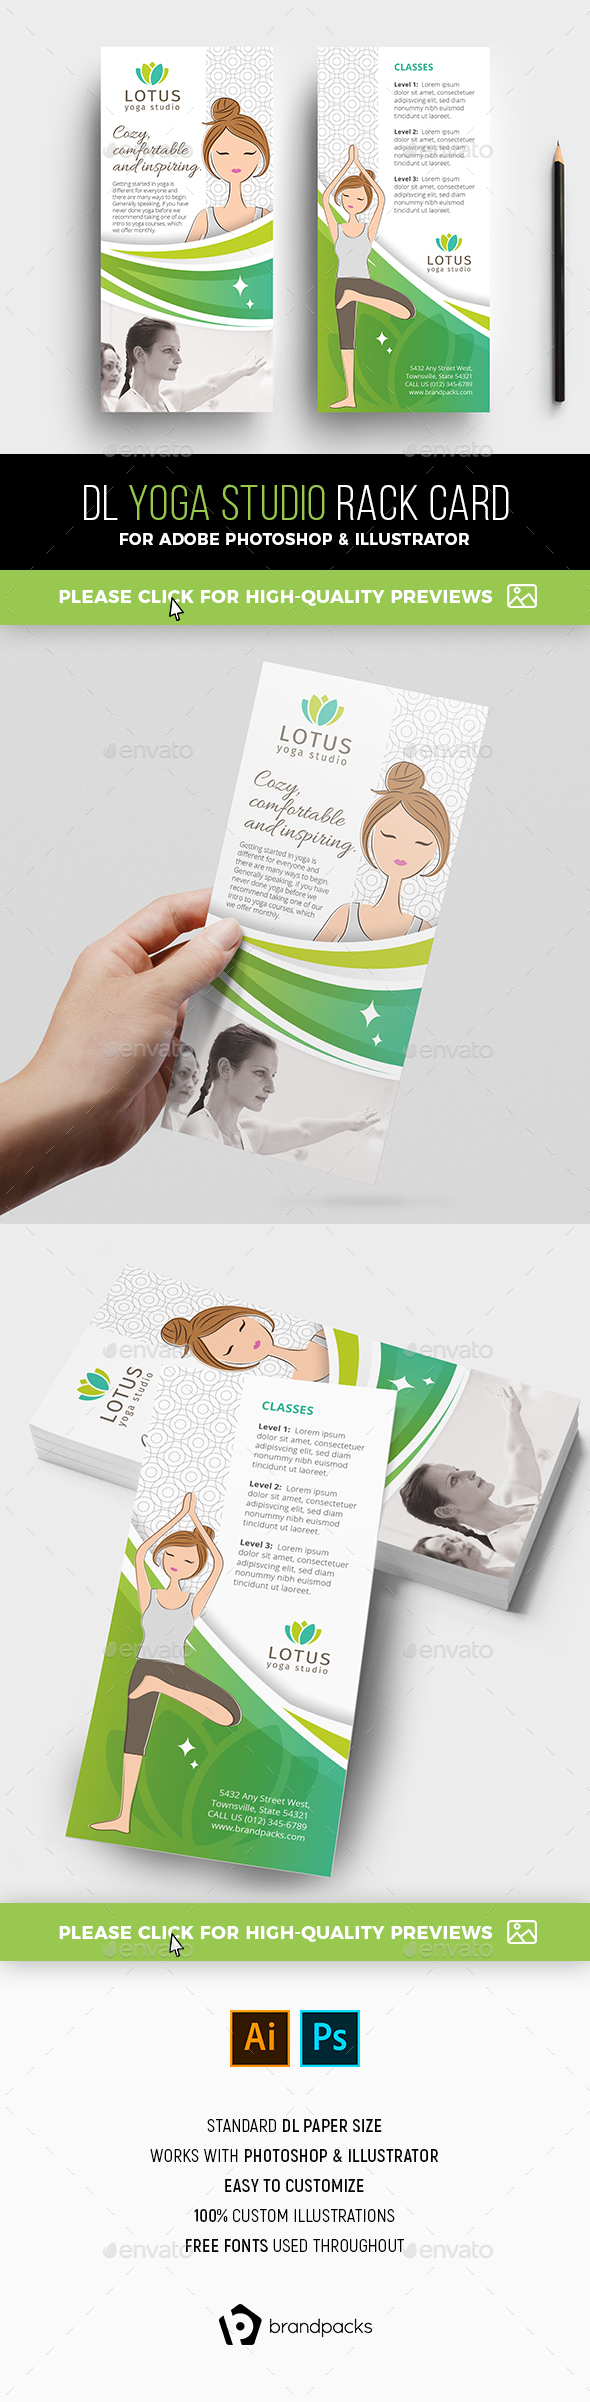 Yoga Studio Rack Card Template - Sports Events